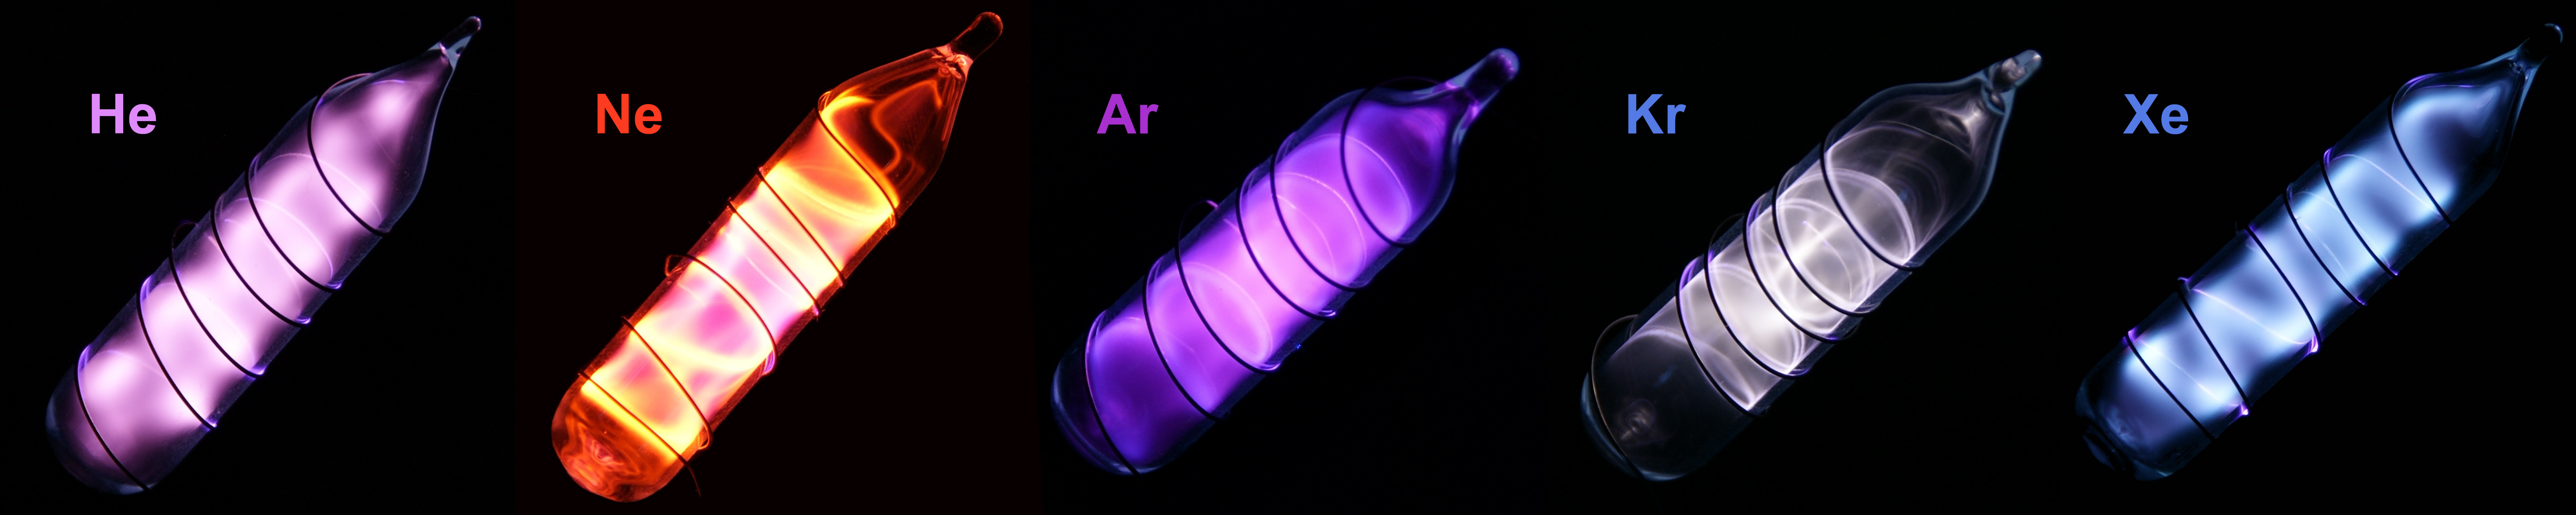 Glow of various noble gases including Xenon (Xe)